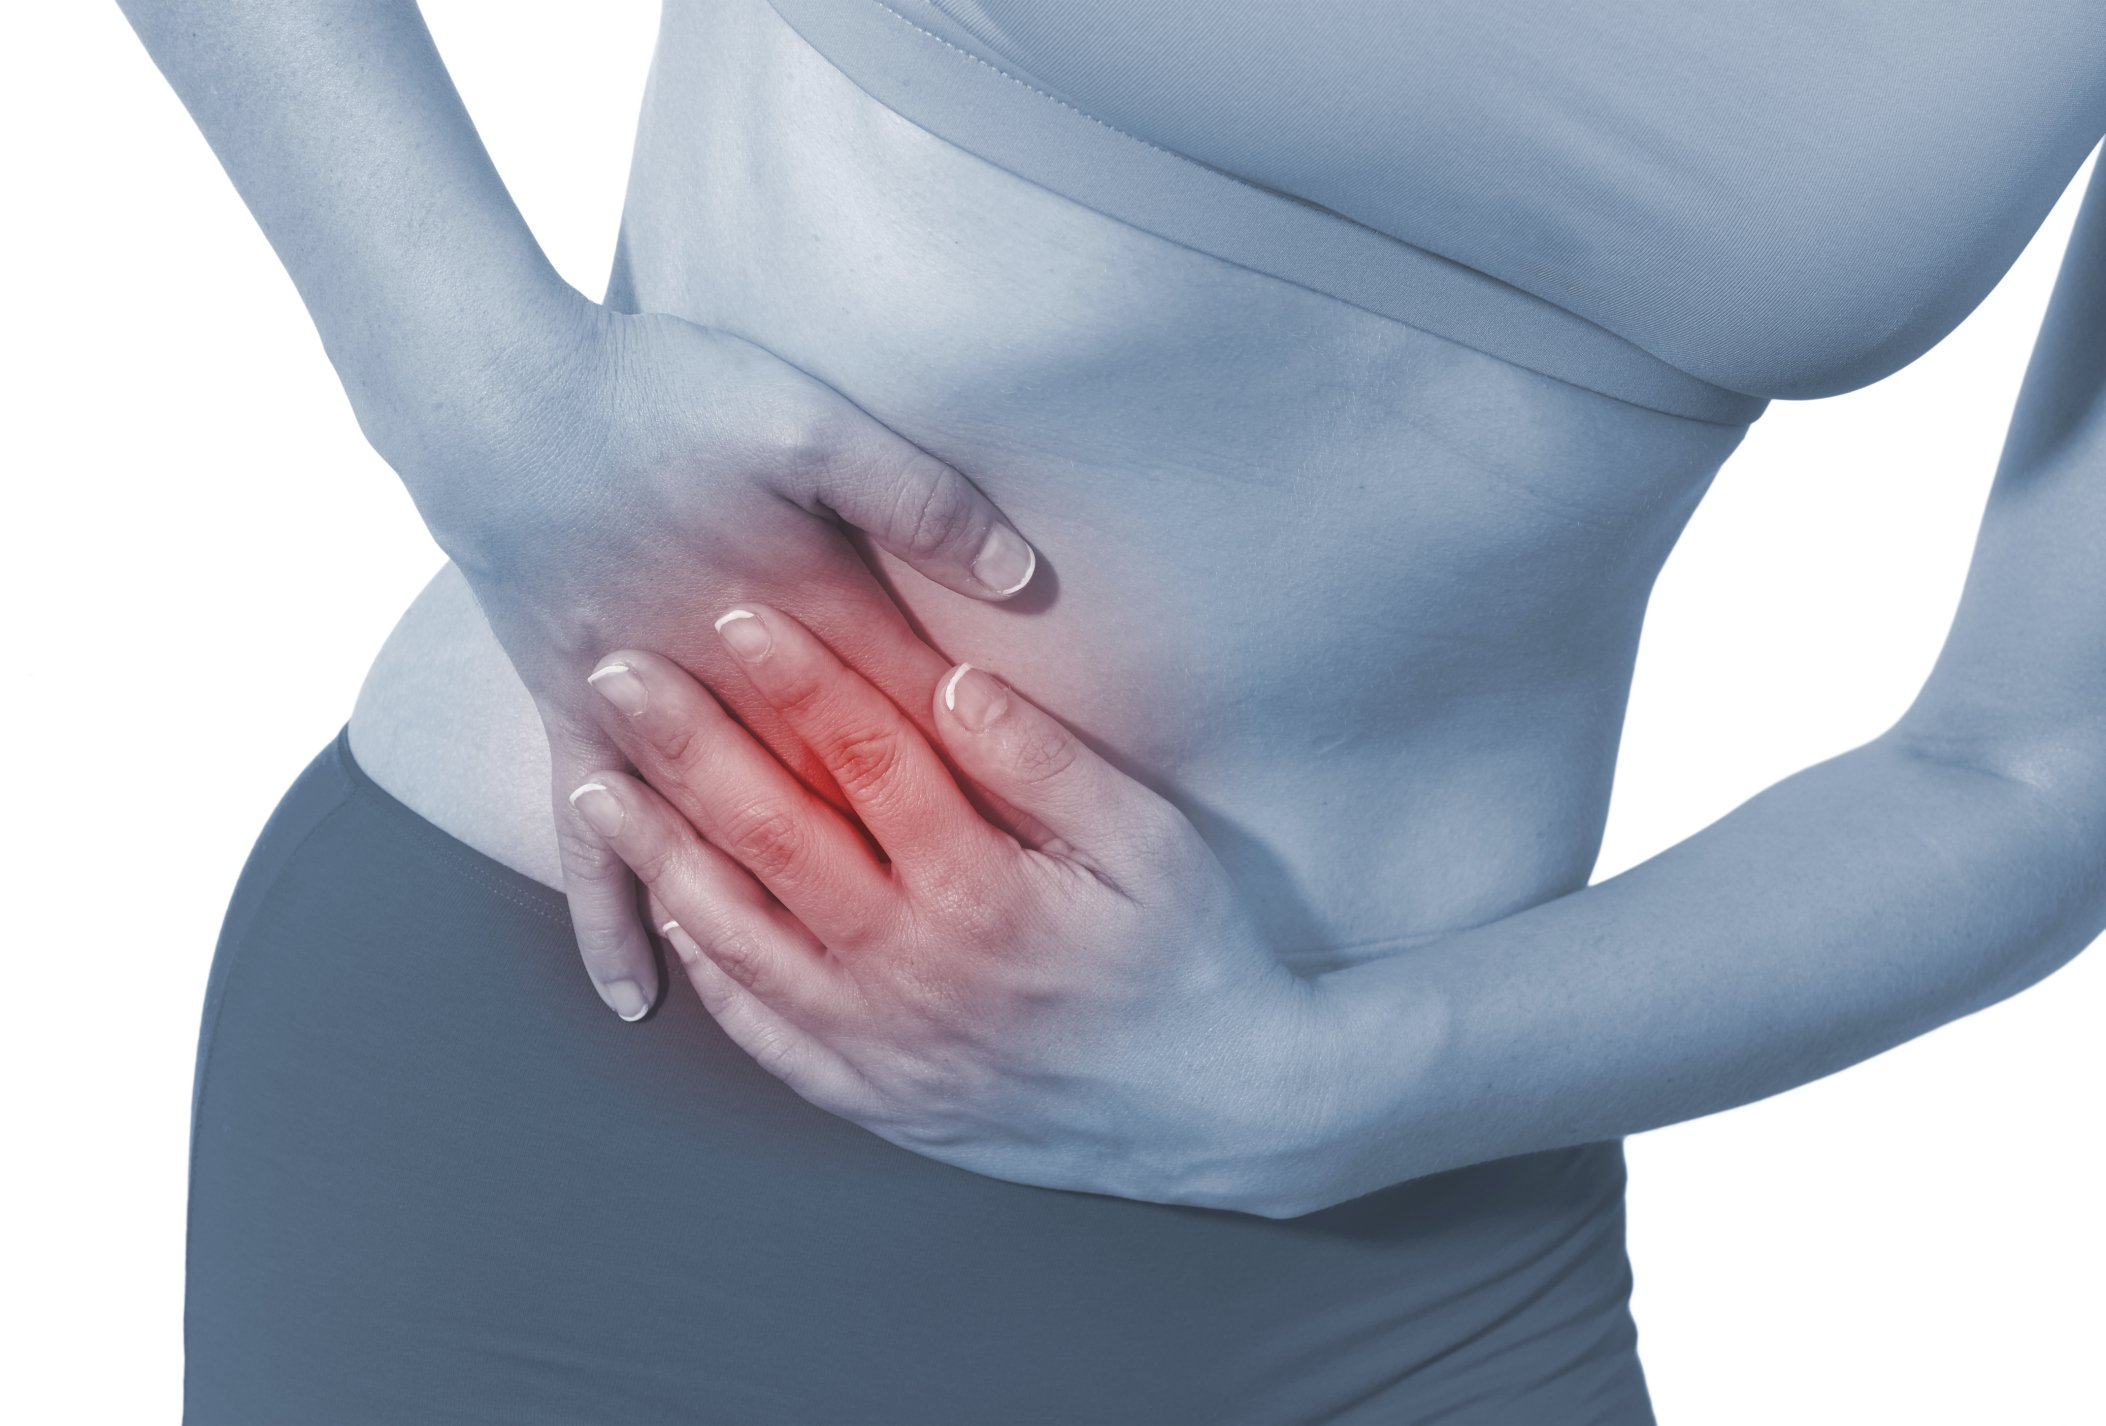 Woman Showing Stomach Pain